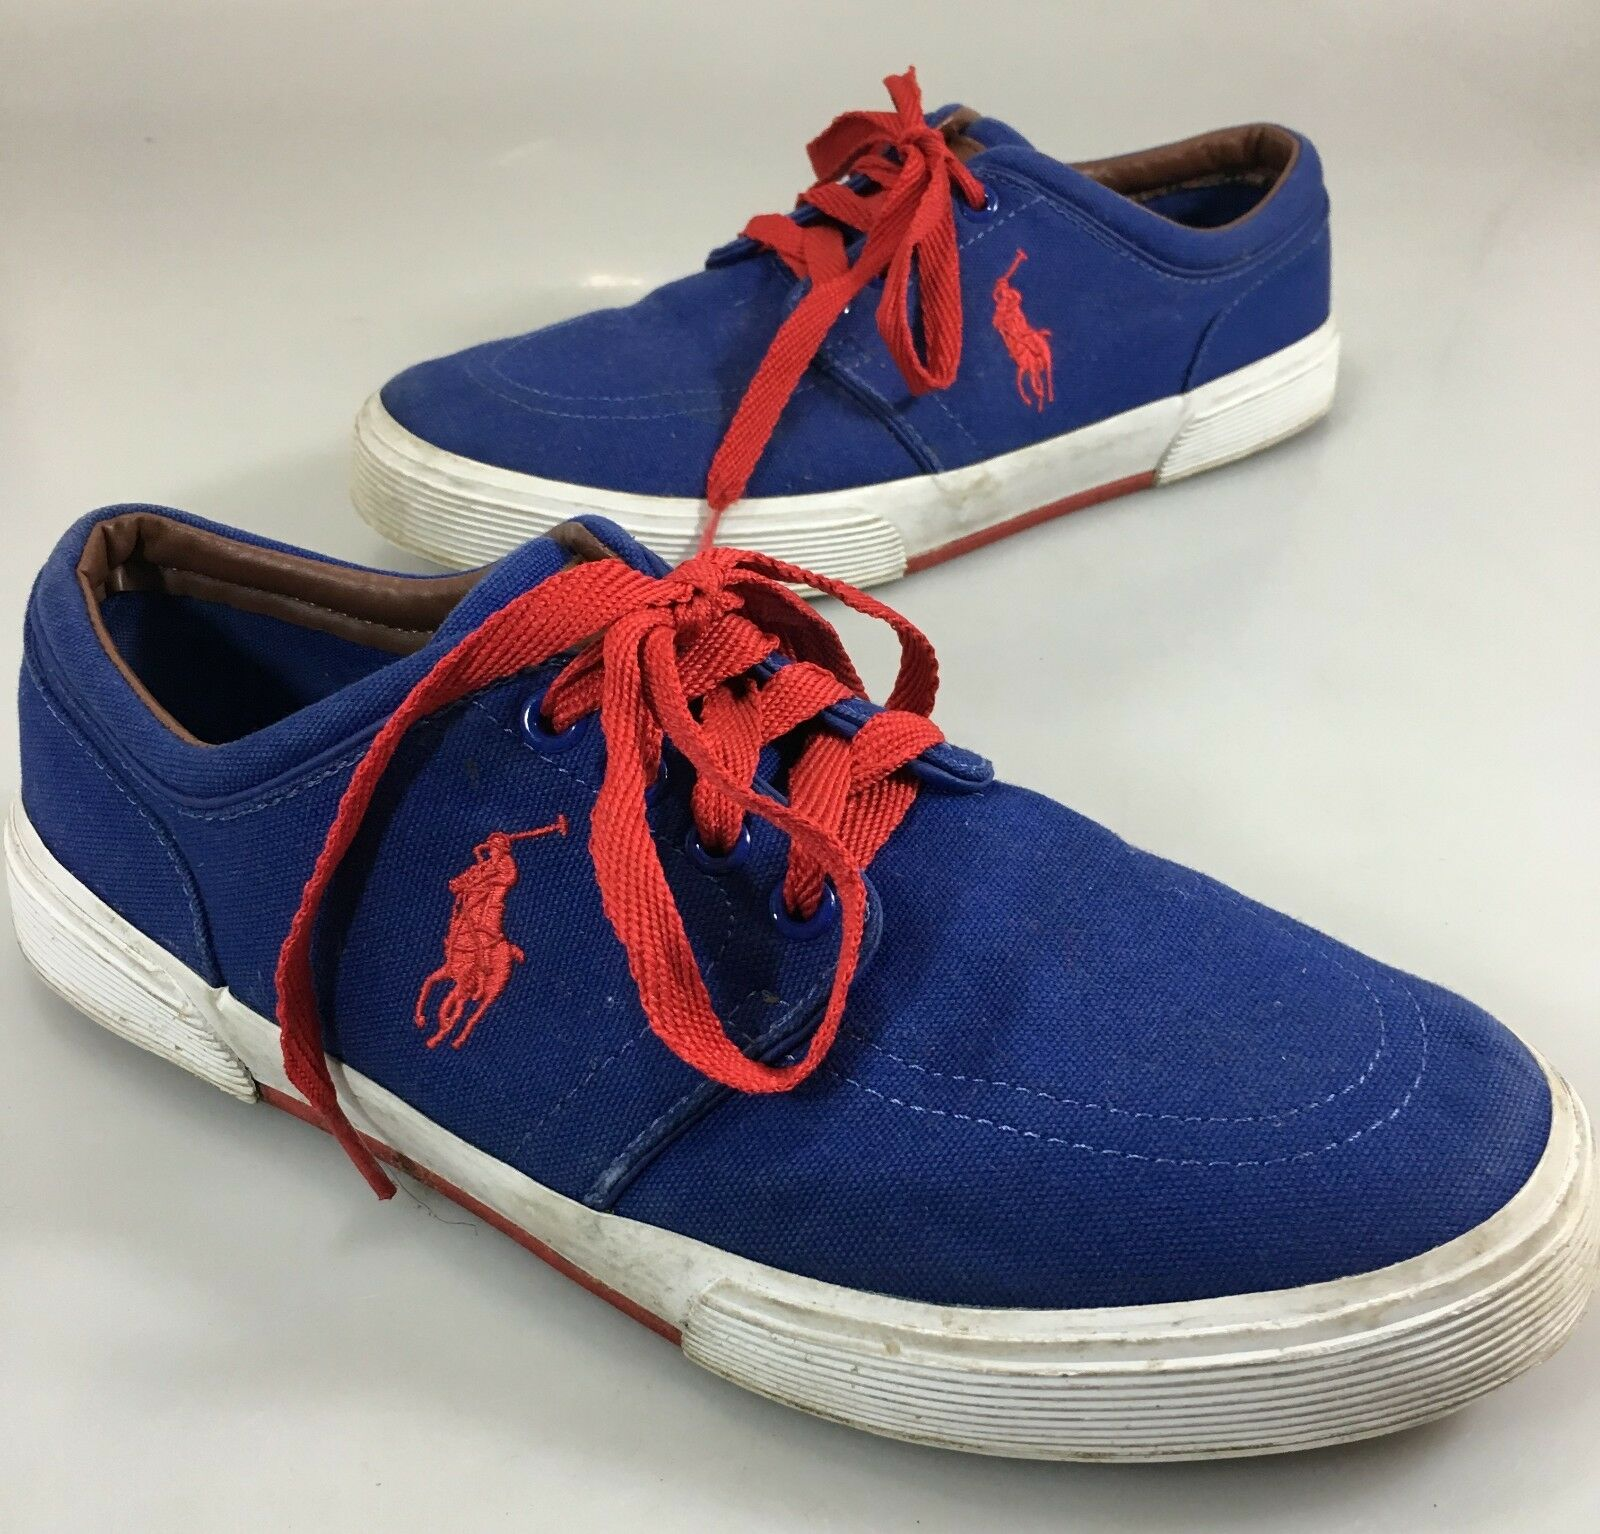 Polo Ralph Lauren Mens 9.5D Faxon bluee Canvas Red Laces Gym shoes Sneakers